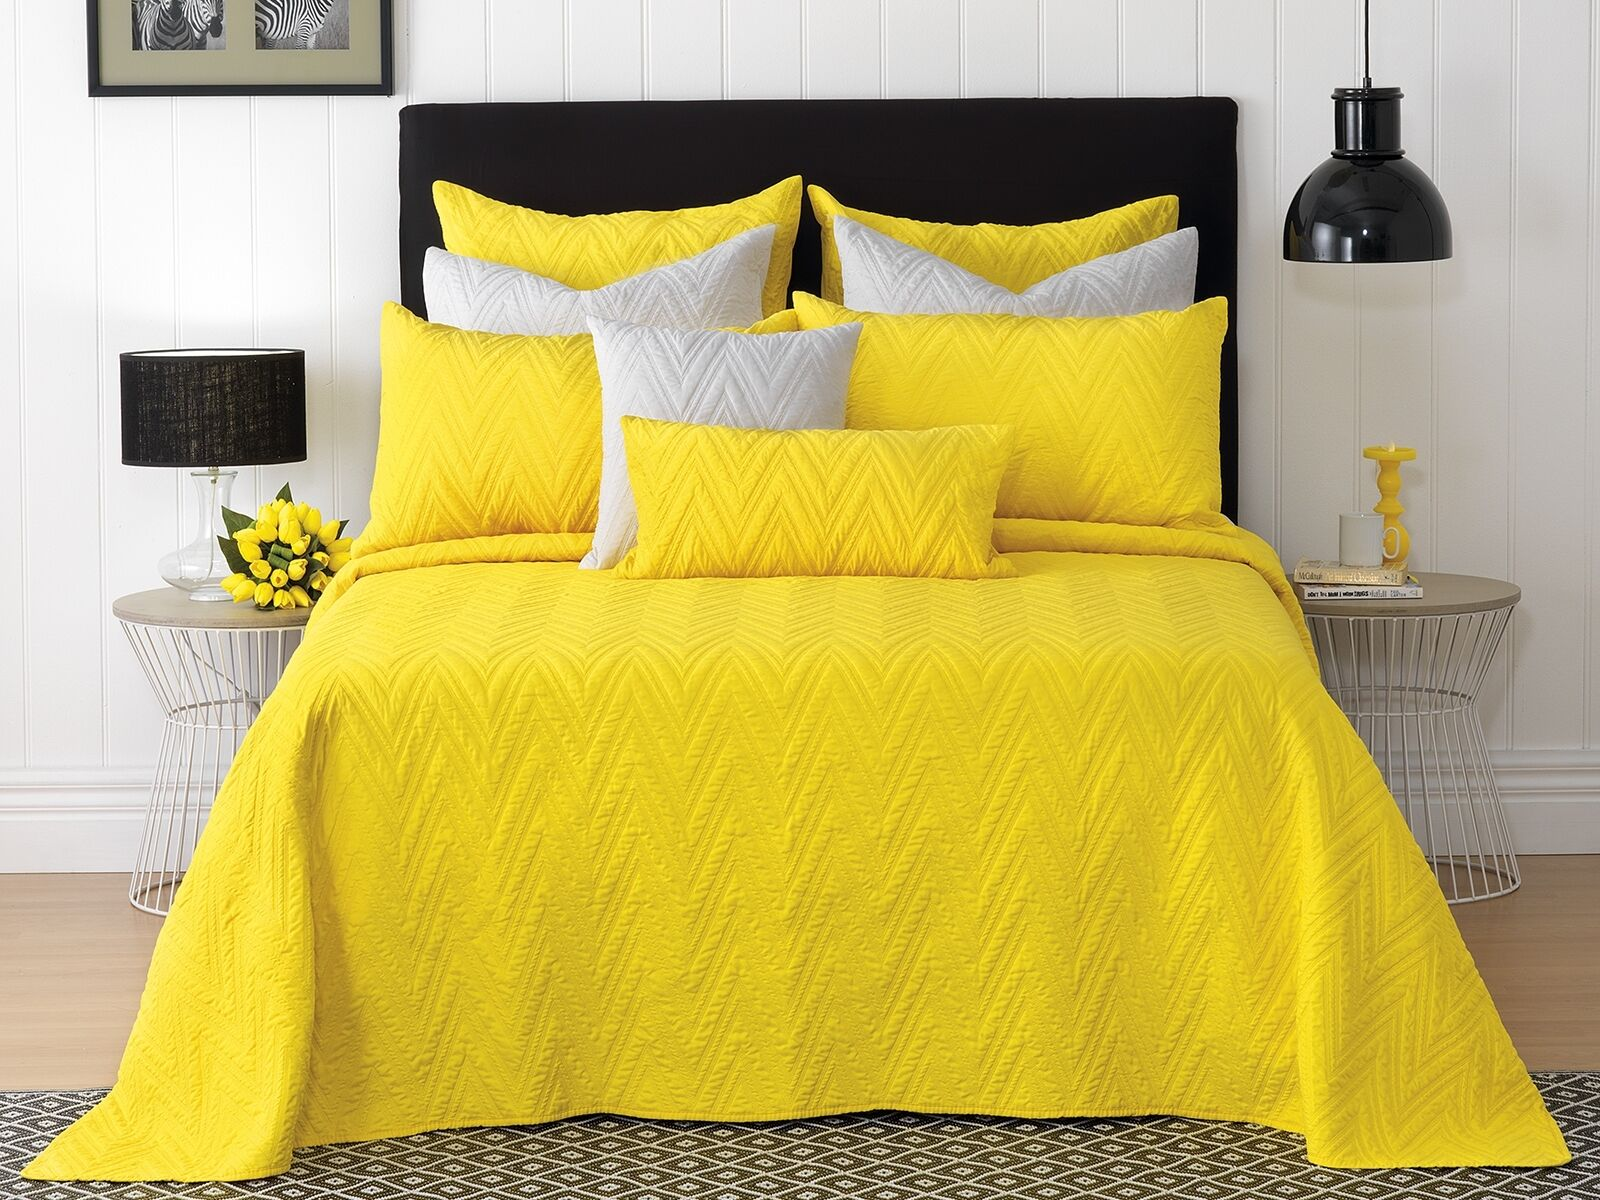 White Hudson Vibrant Yellow Fully Reversible Bedspread Set in All Sizes